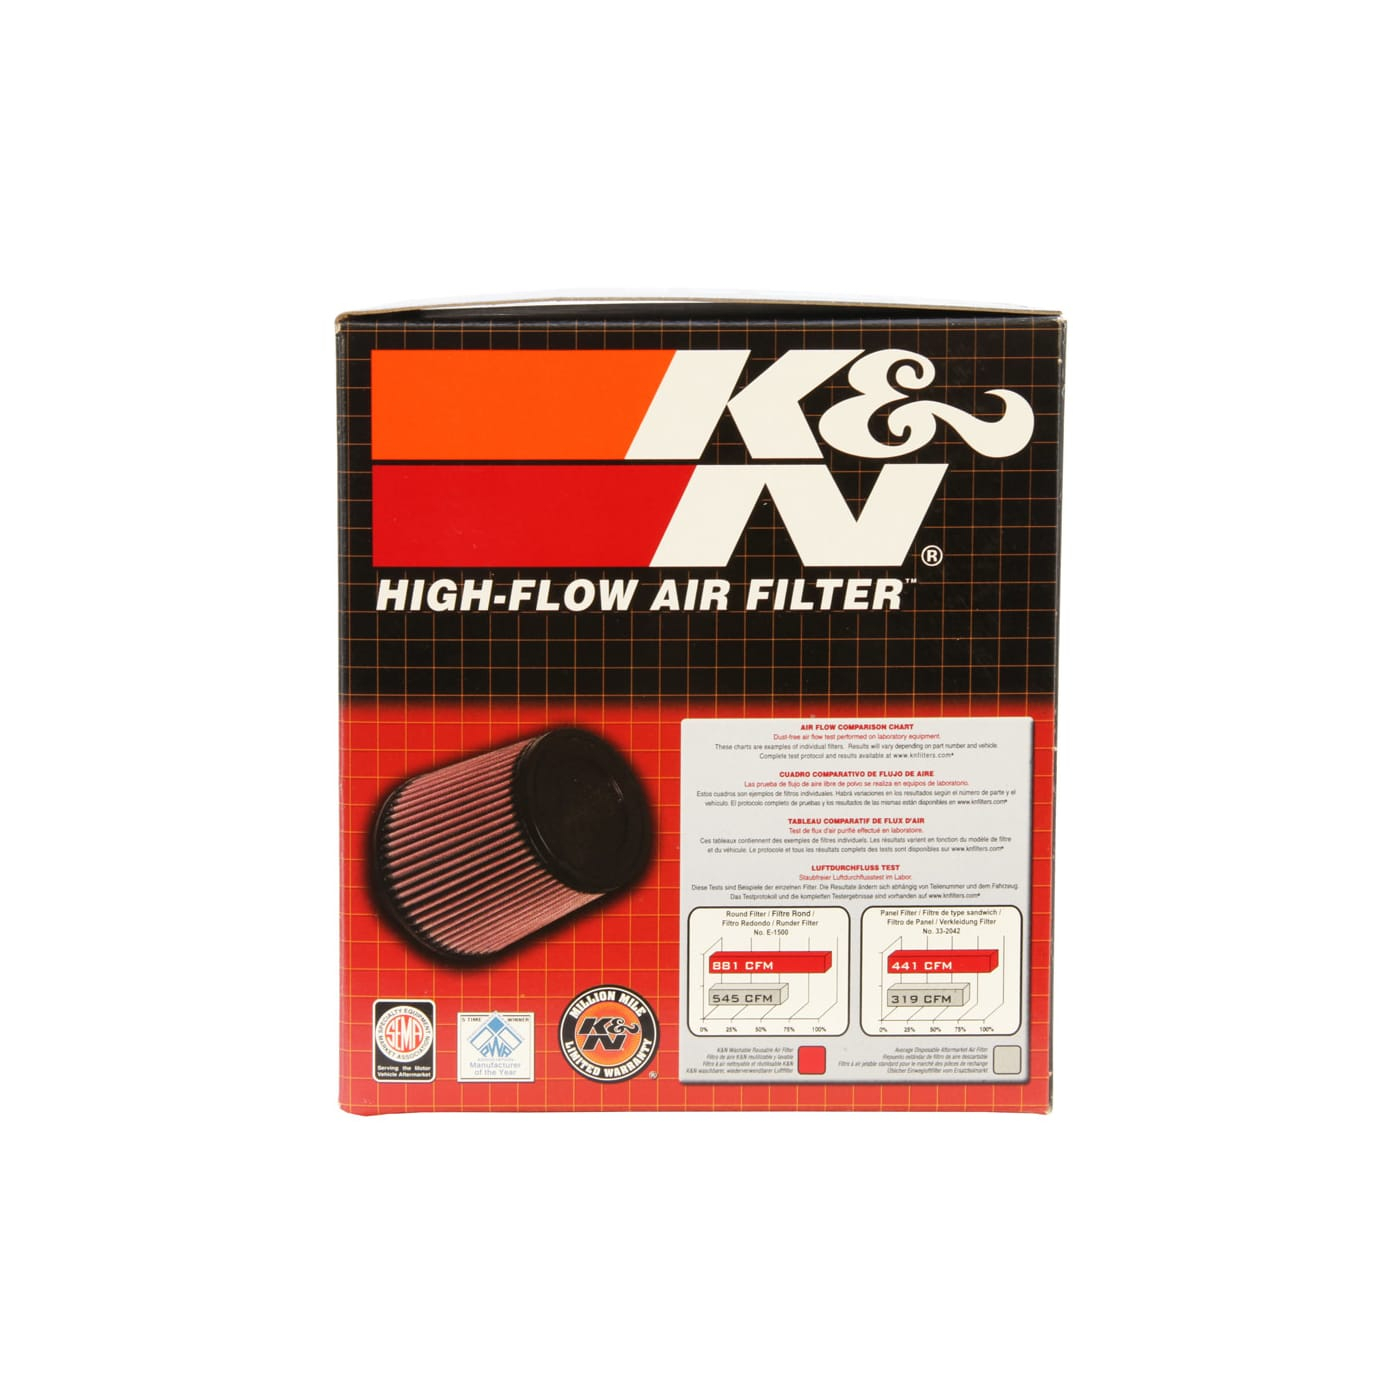 E-2021 K&N Replacement Air Filter intended for Depo Chart 2021